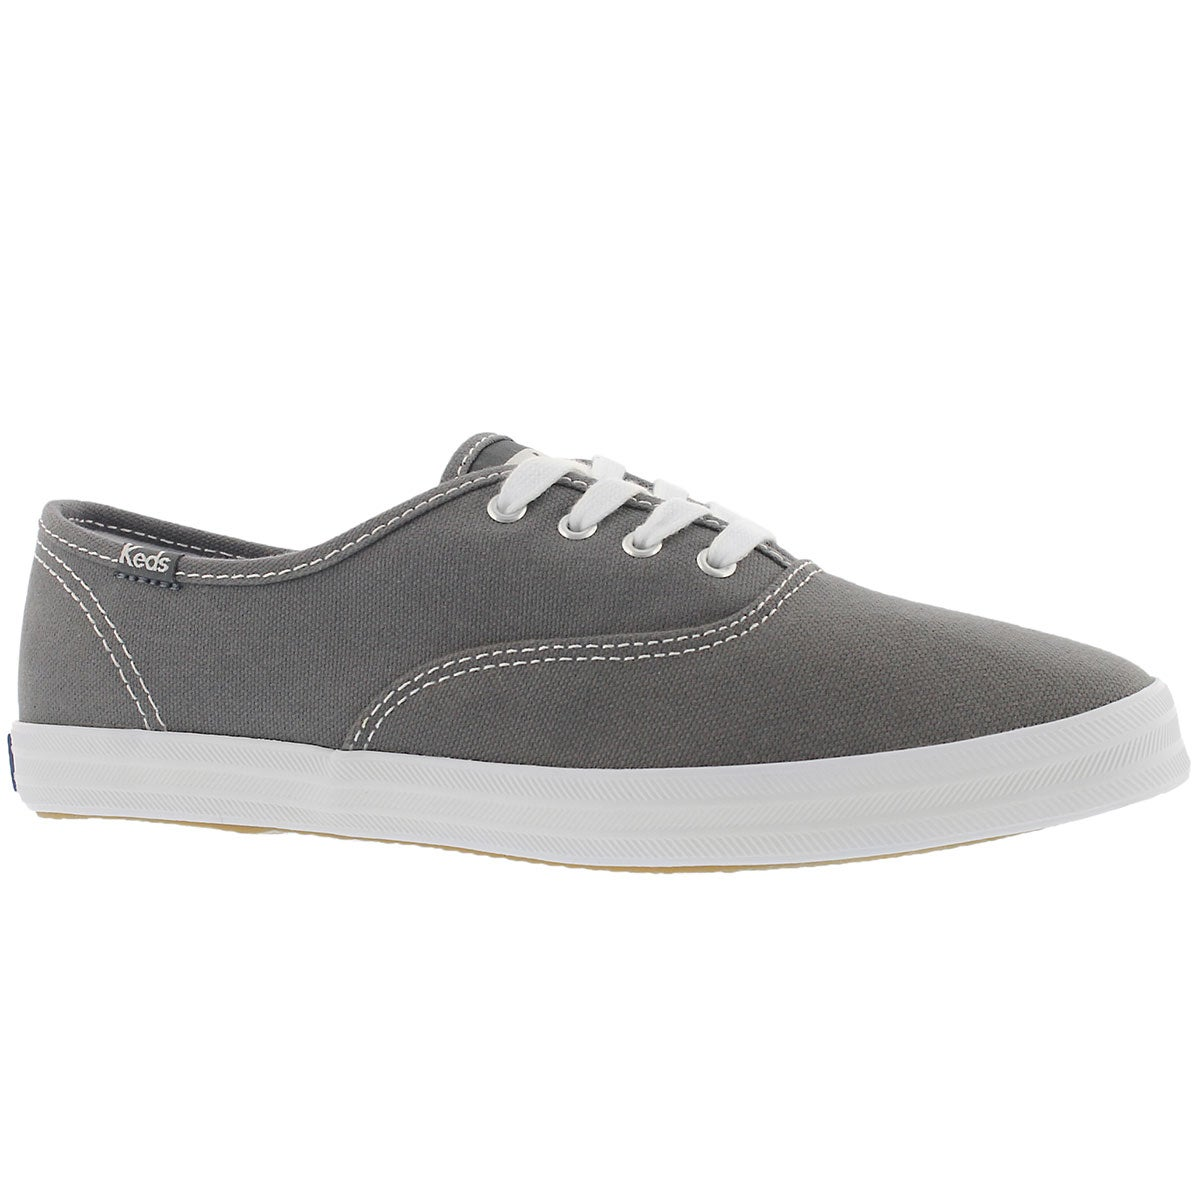 Lds Champion grey canvas CVO sneaker